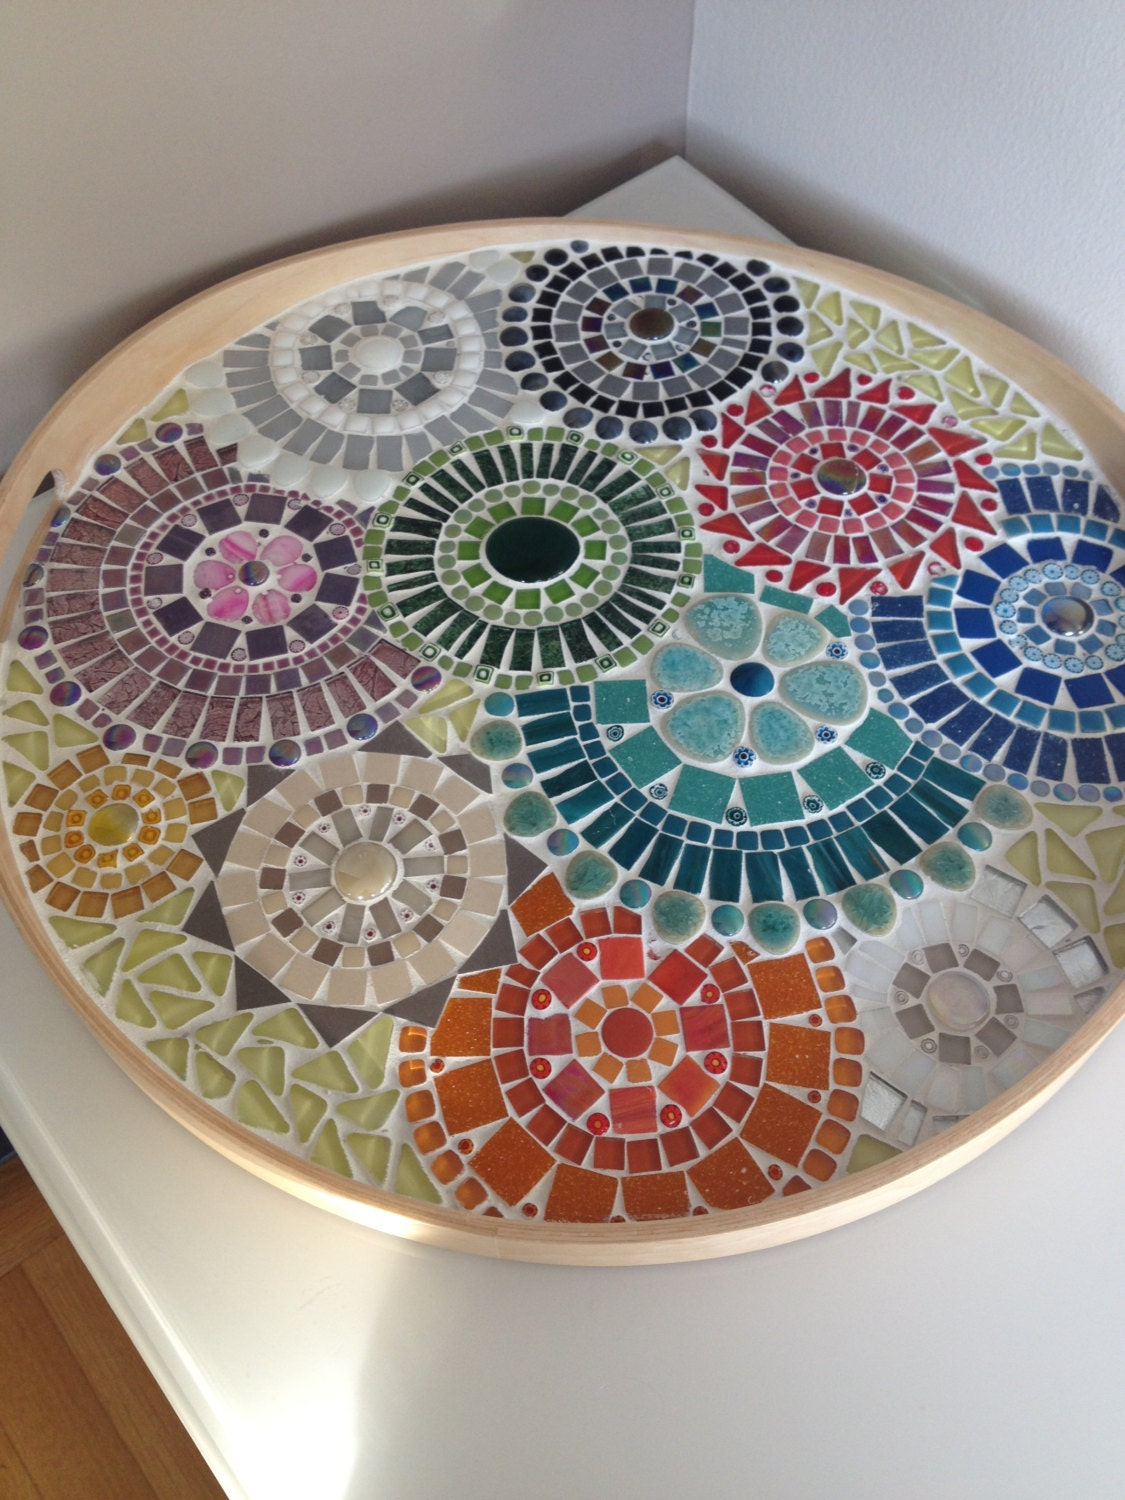 Mosaic Design Bowlhandcrafted Mosaic Tray Mosaic Art Home